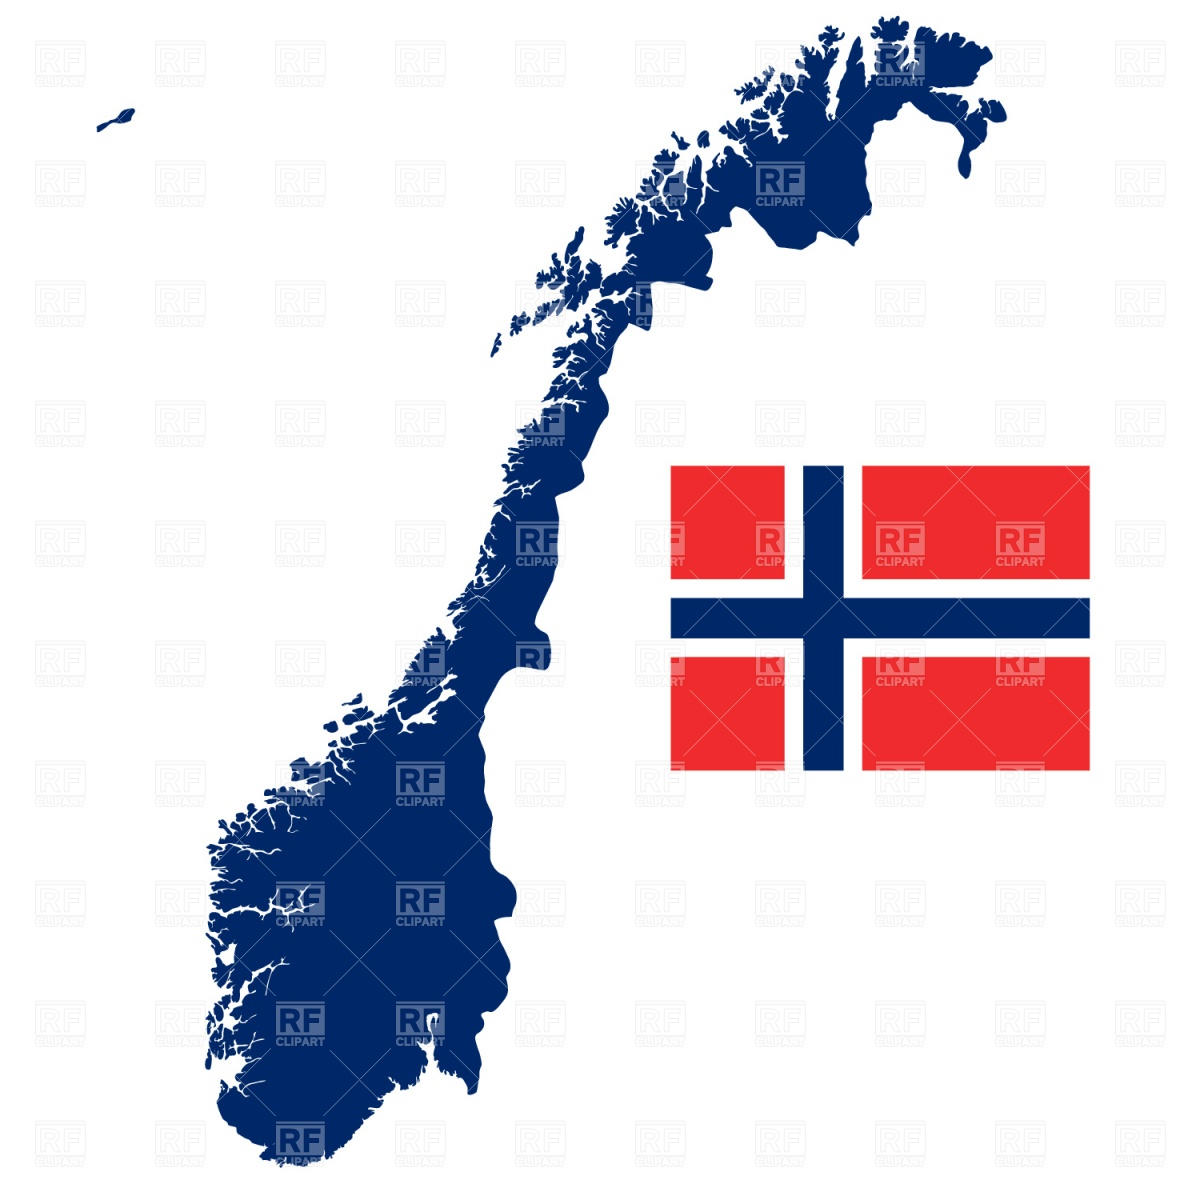 Norwegian Clipart Clipart Panda Free Clipart Images - Norway map clipart